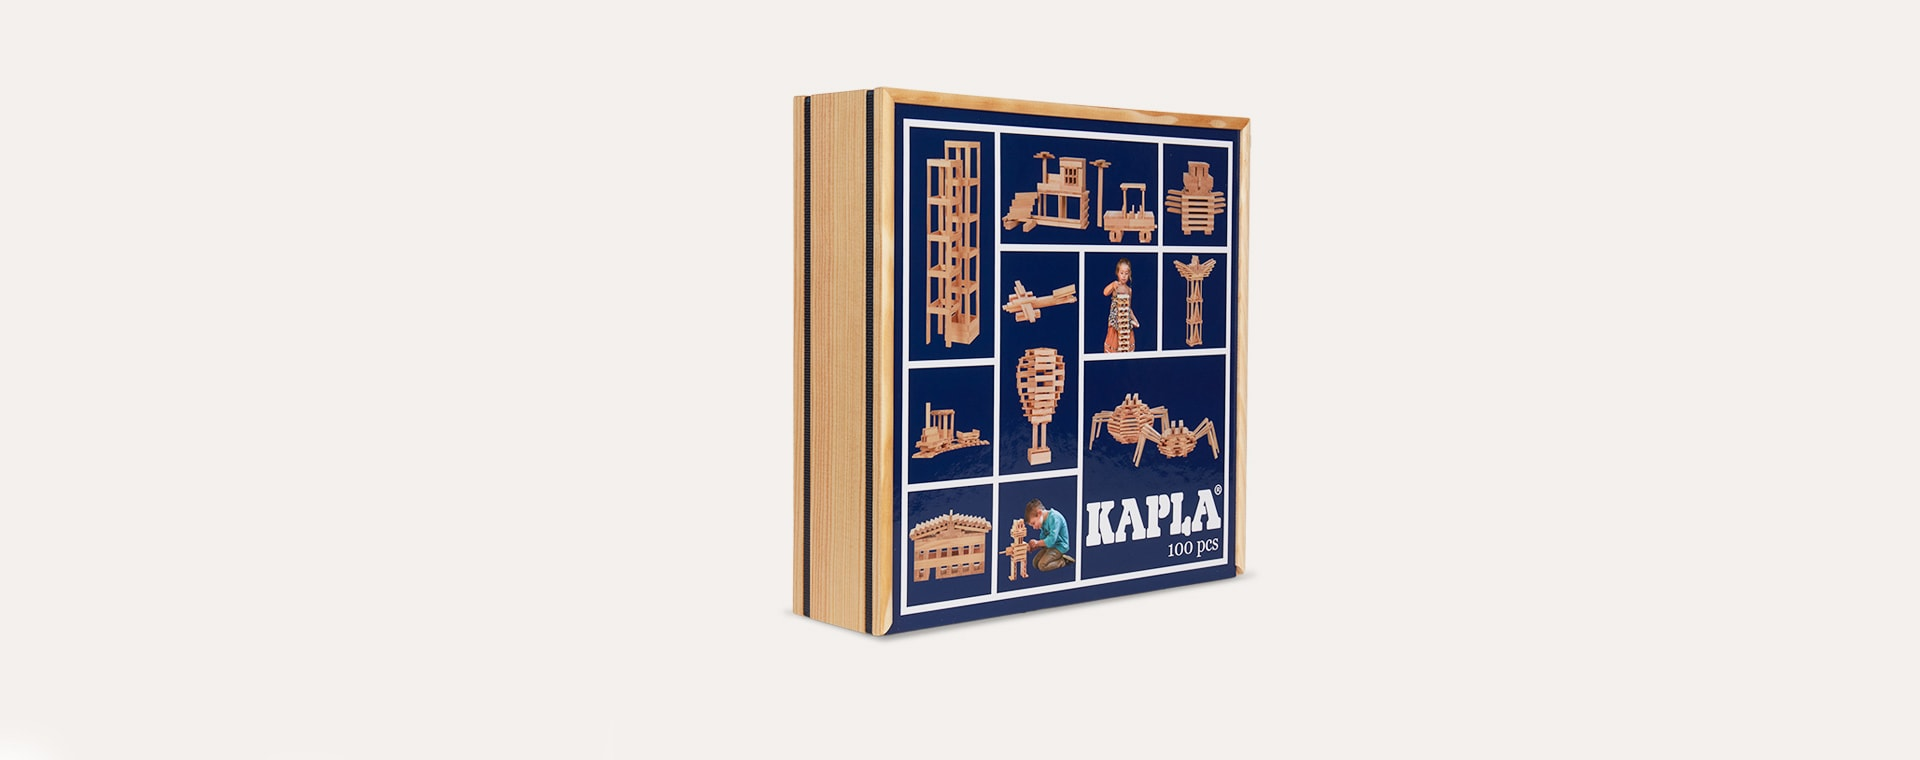 Neutral kapla Building Set - 100 Case